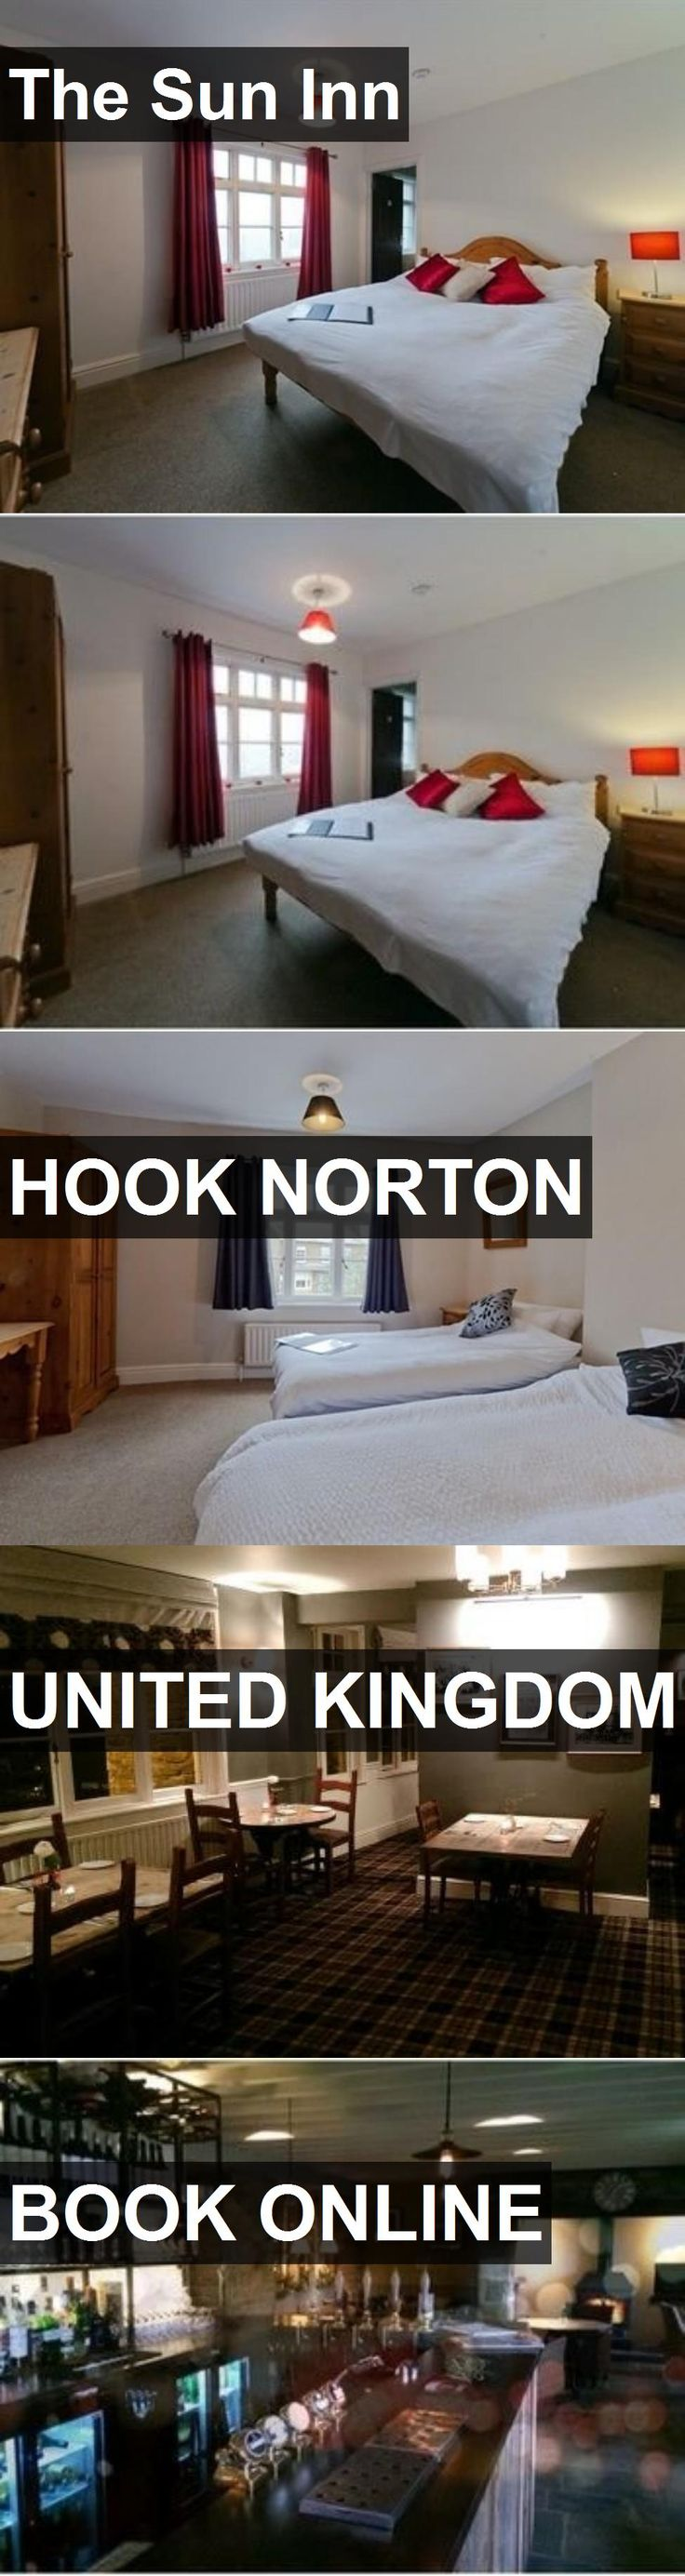 Hotel The Sun Inn in Hook Norton, United Kingdom. For more information, photos, reviews and best prices please follow the link. #UnitedKingdom #HookNorton #travel #vacation #hotel